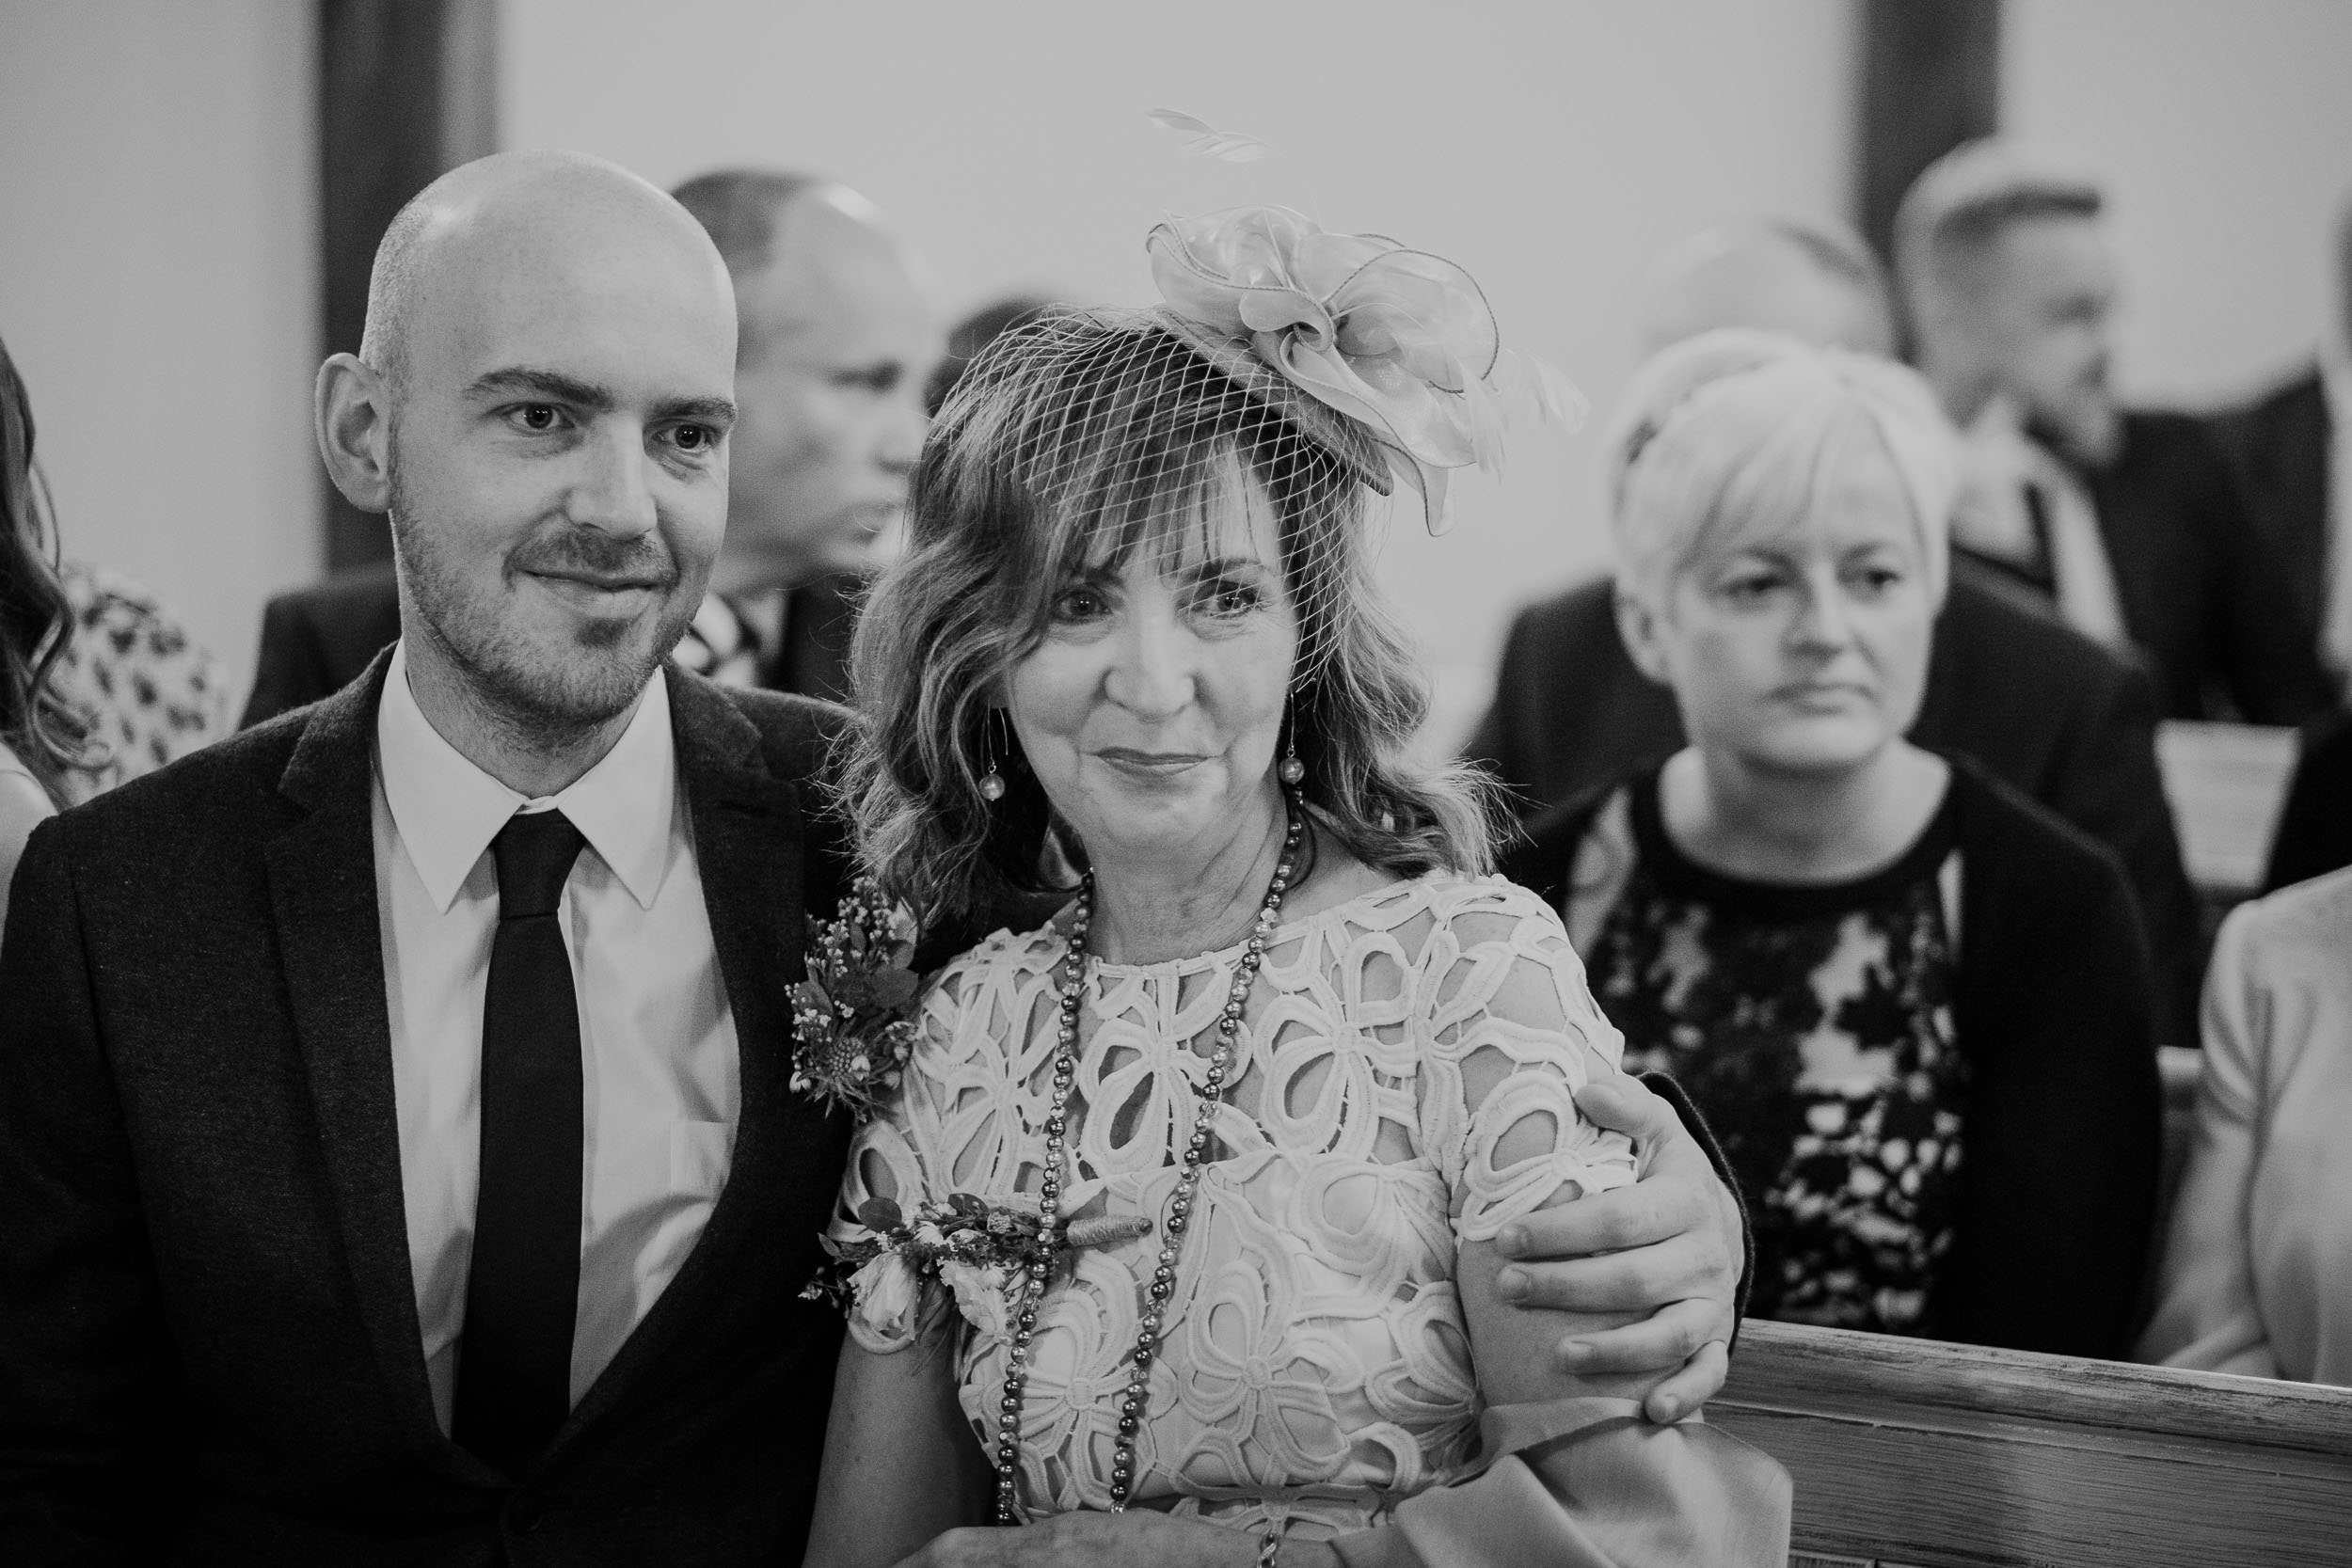 Son hugs his mother during an emotional wedding ceremony in a black and white photograph